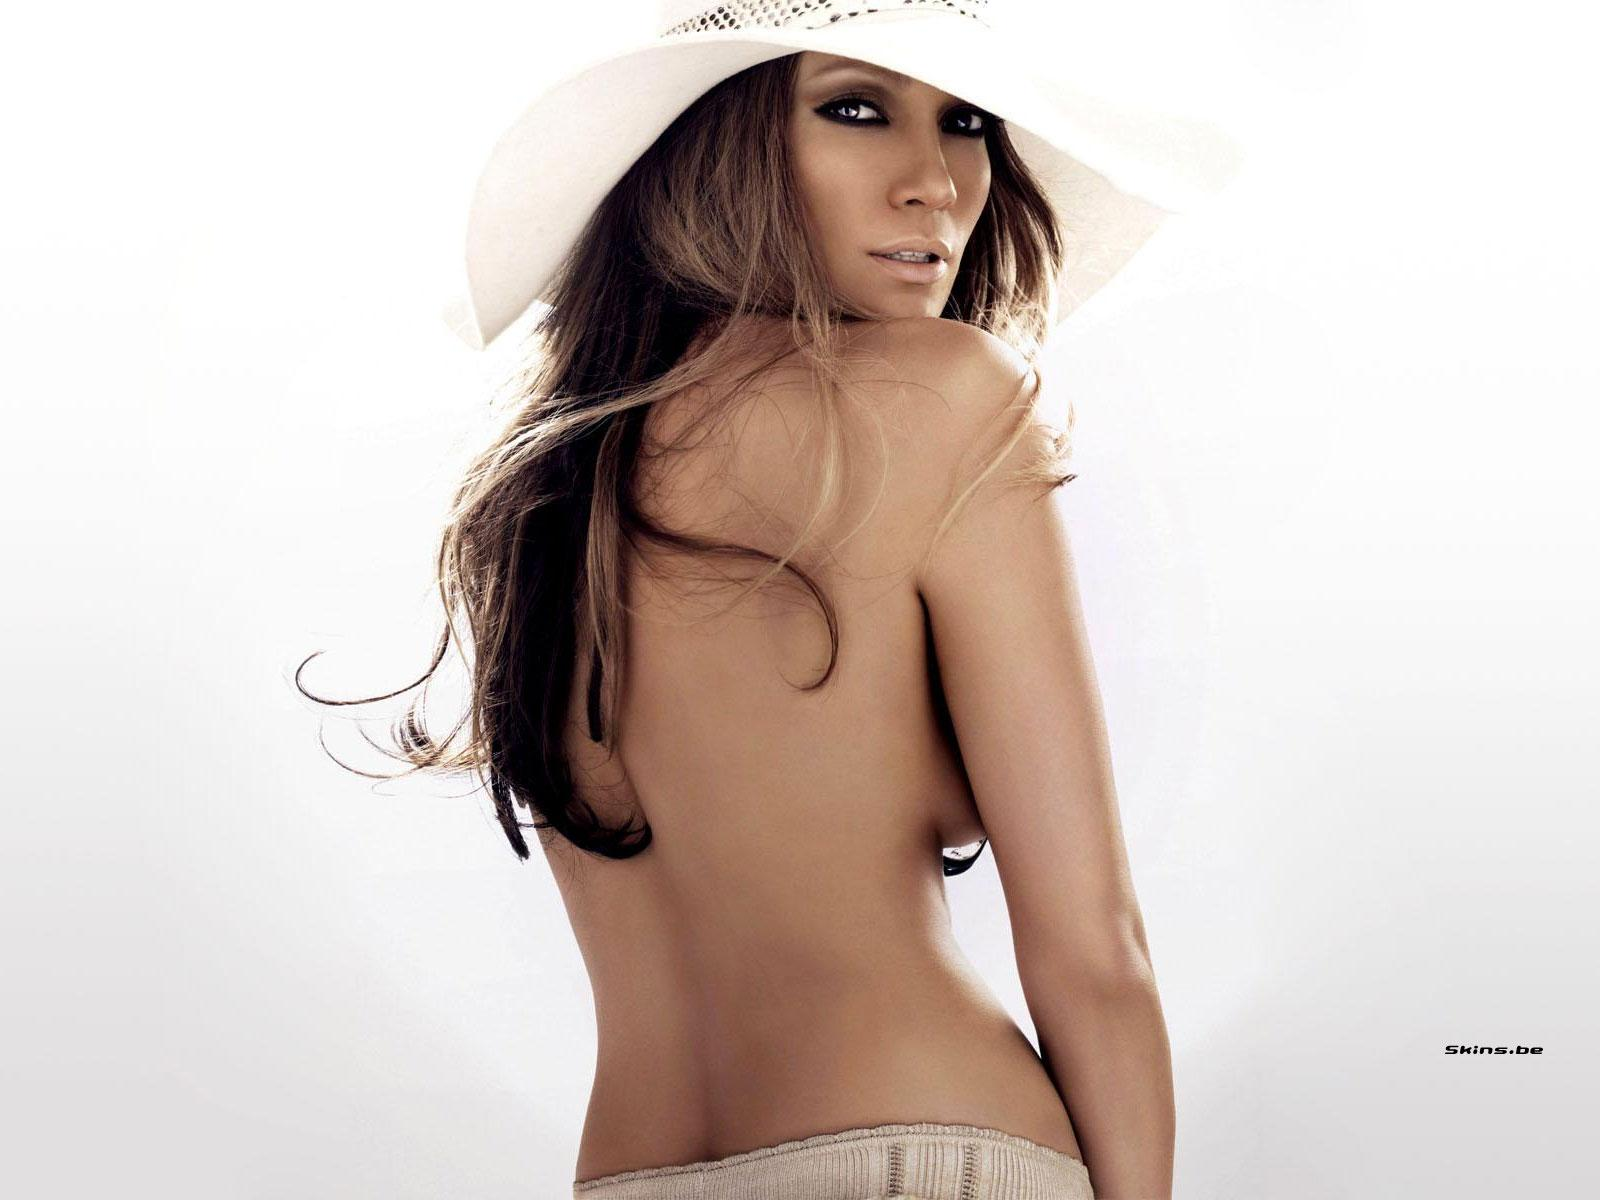 blogspotcom jennifer lopez - photo #23